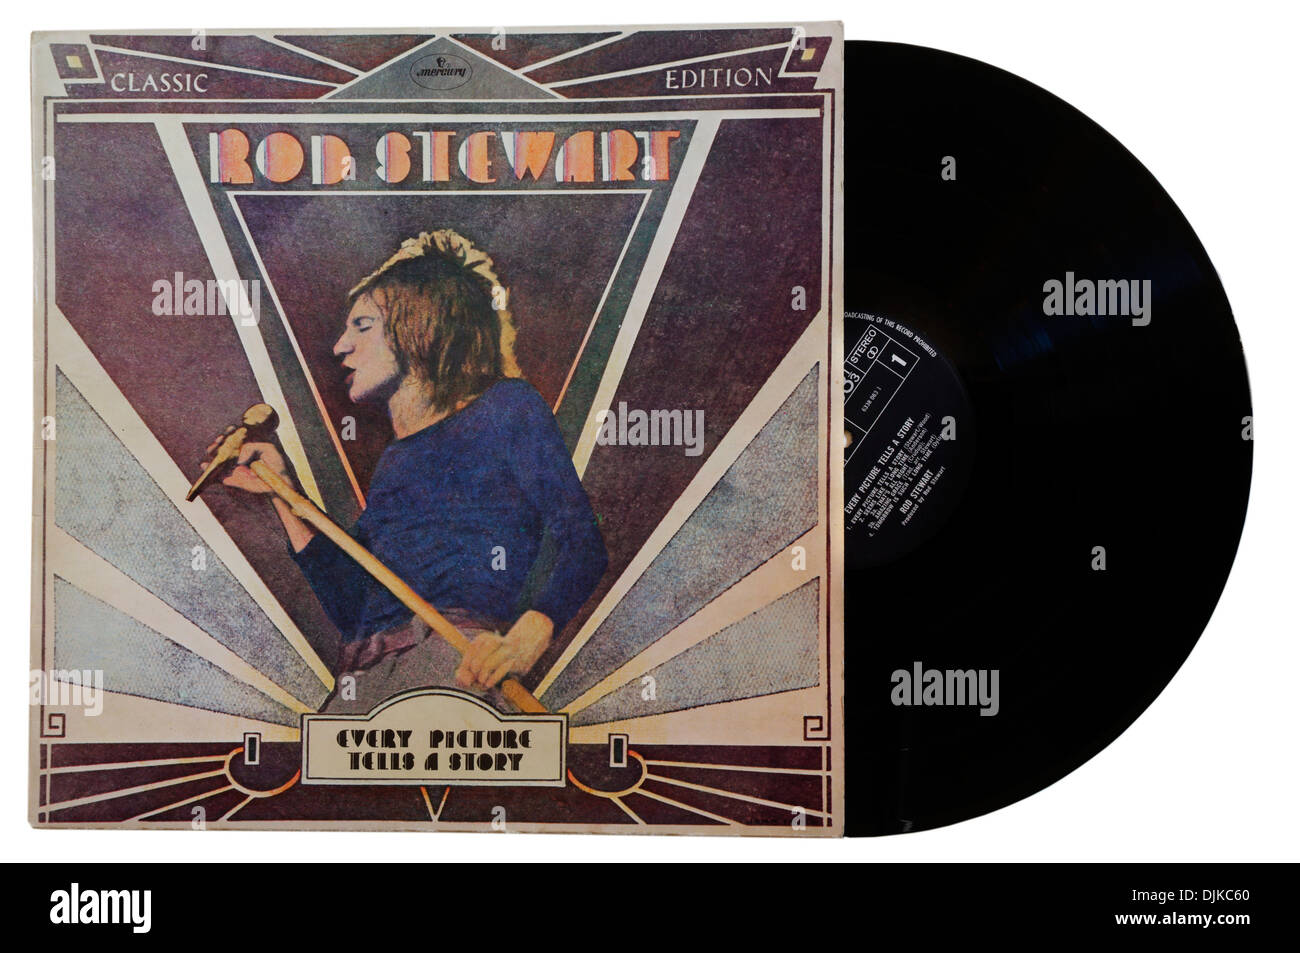 Every Picture Tells a Story album by Rod Stewart - Stock Image